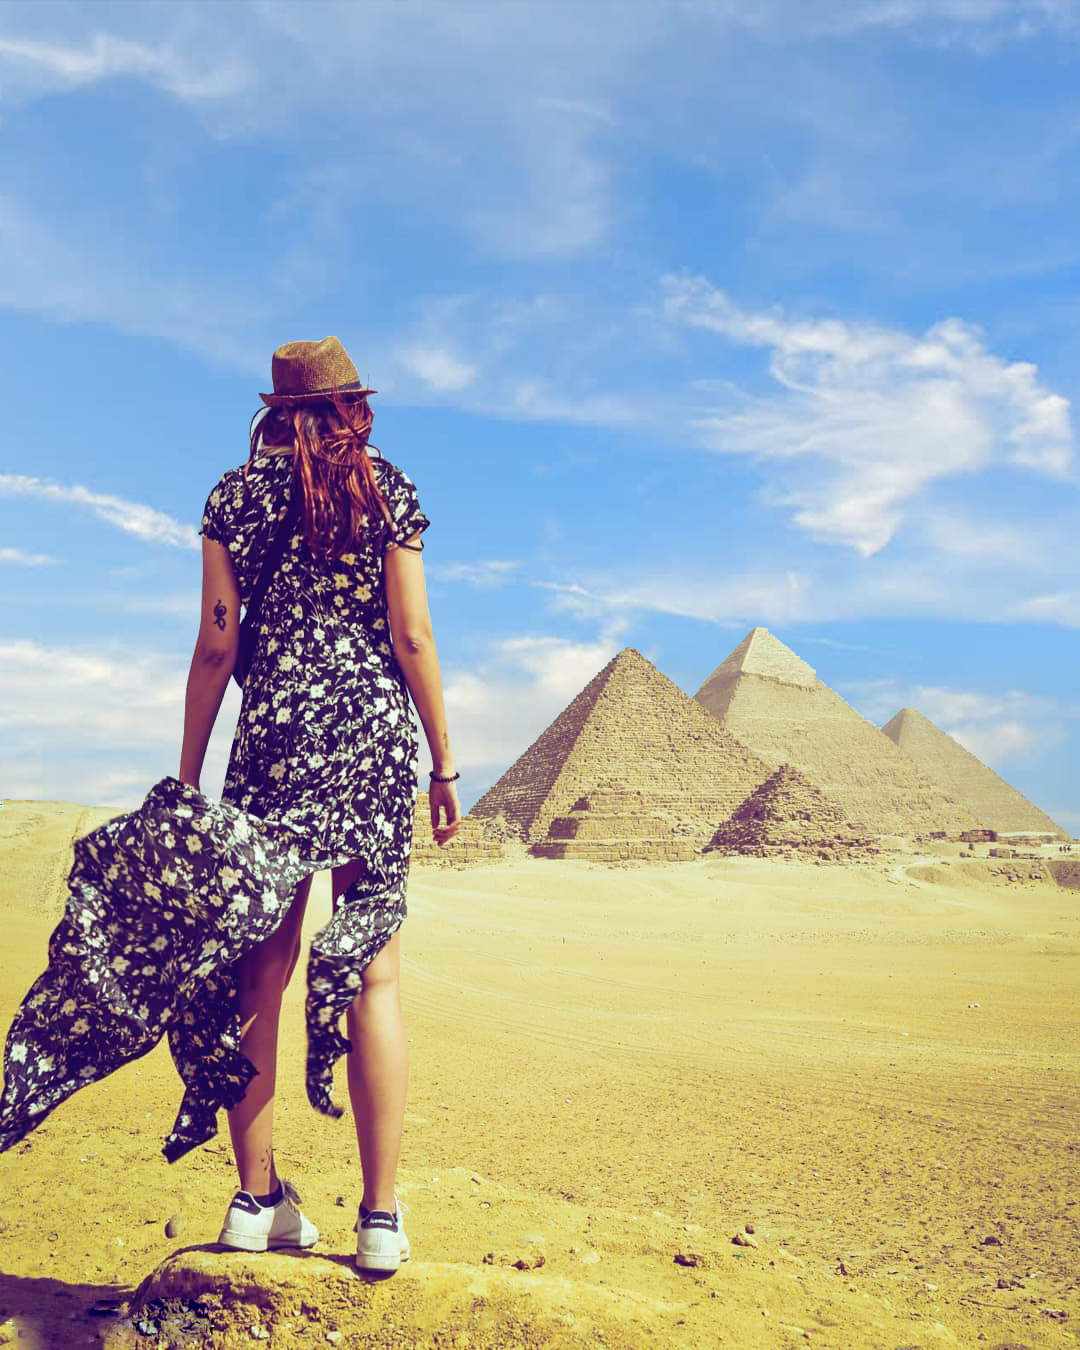 Cairo Day Trip from Soma Bay - Things to Do in Soma Bay - Tours from Hurghada